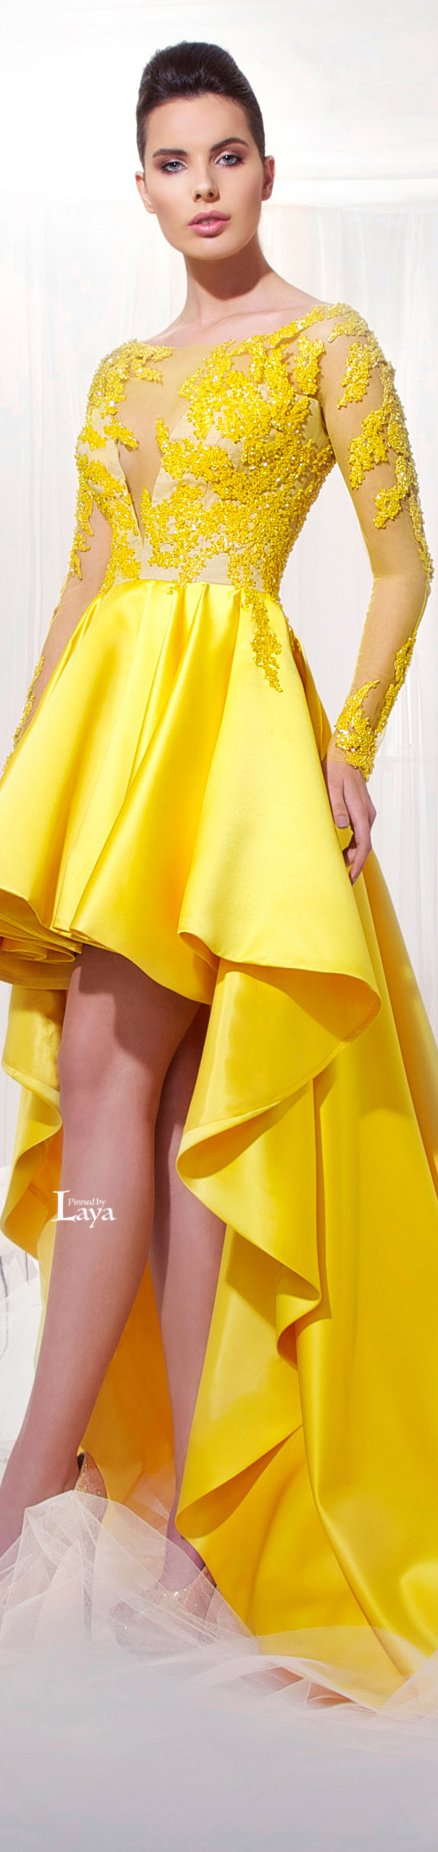 Tarek Sinno S S 2014 Couture Yellow Fashion High Low Evening Dresses Evening Dresses